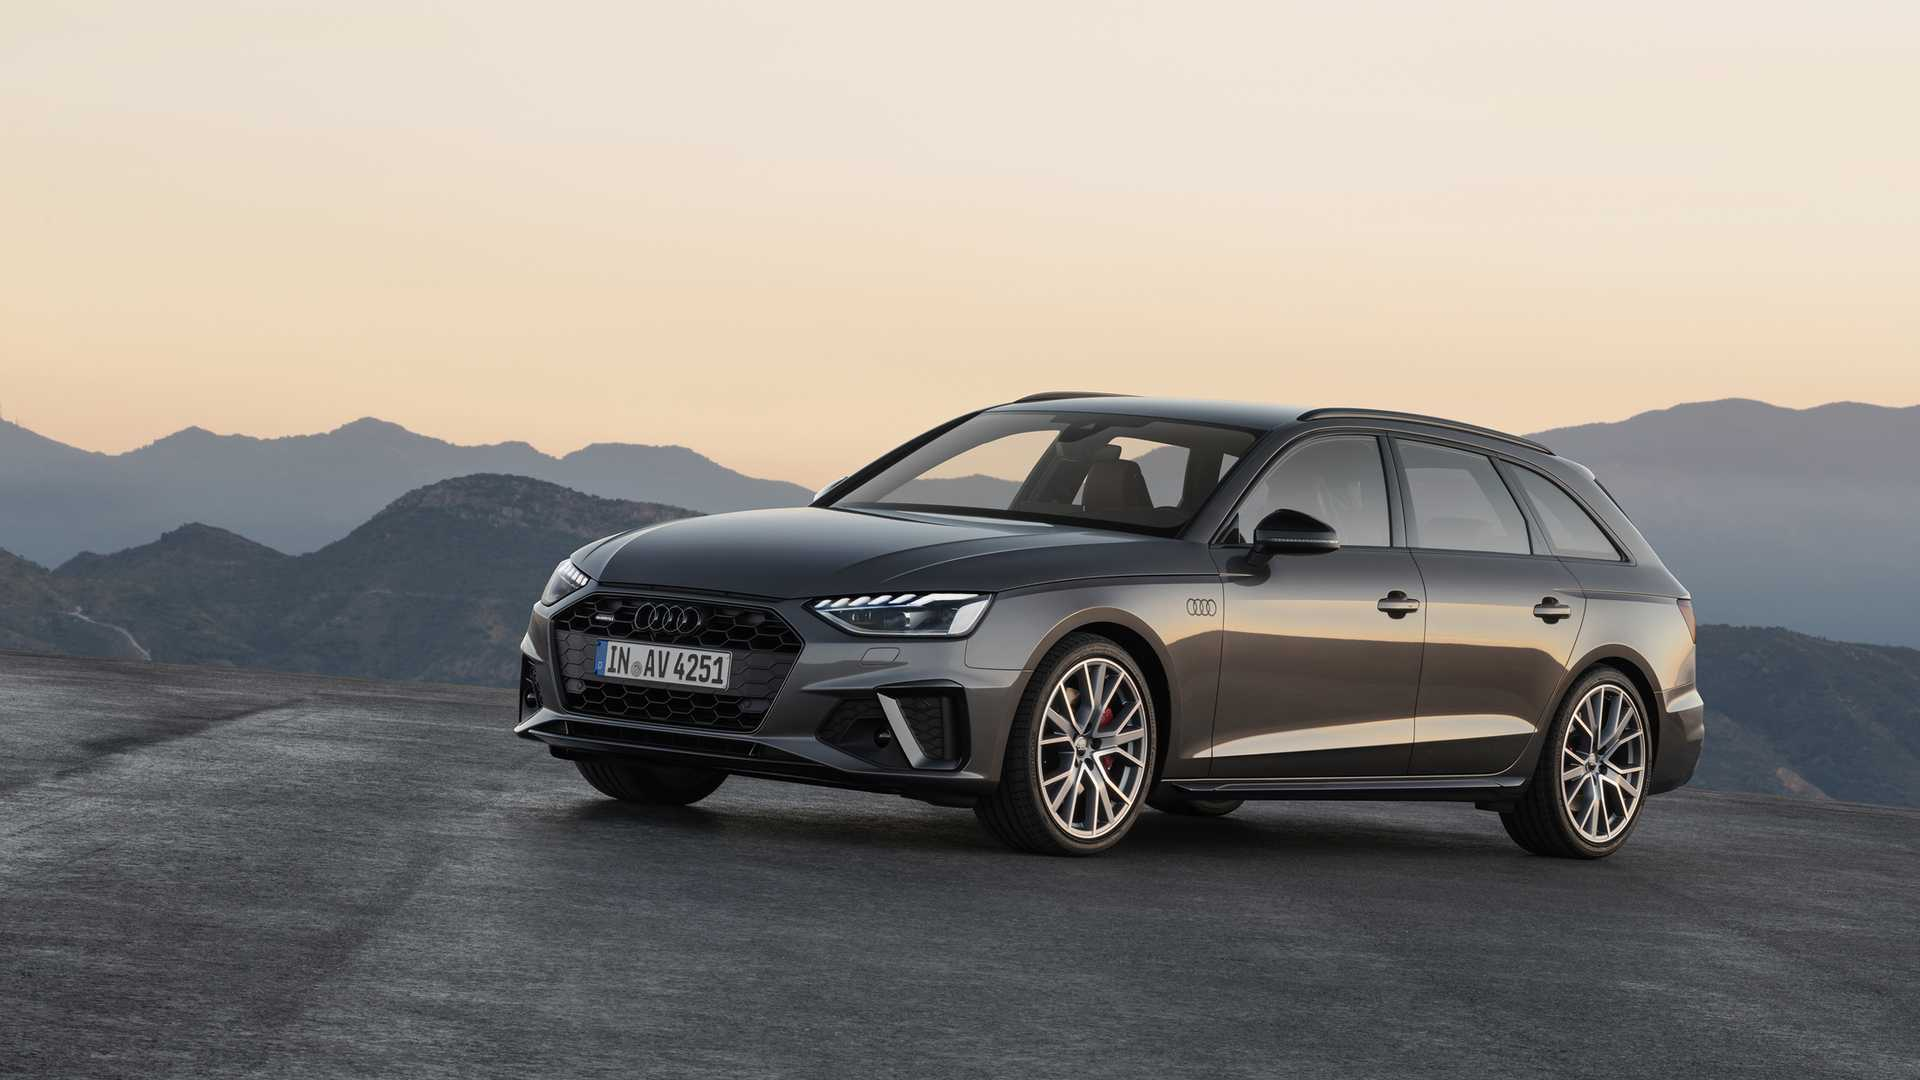 2020 Audi A4 Avant (Color: Terra Gray) Front Three-Quarter Wallpapers (3)